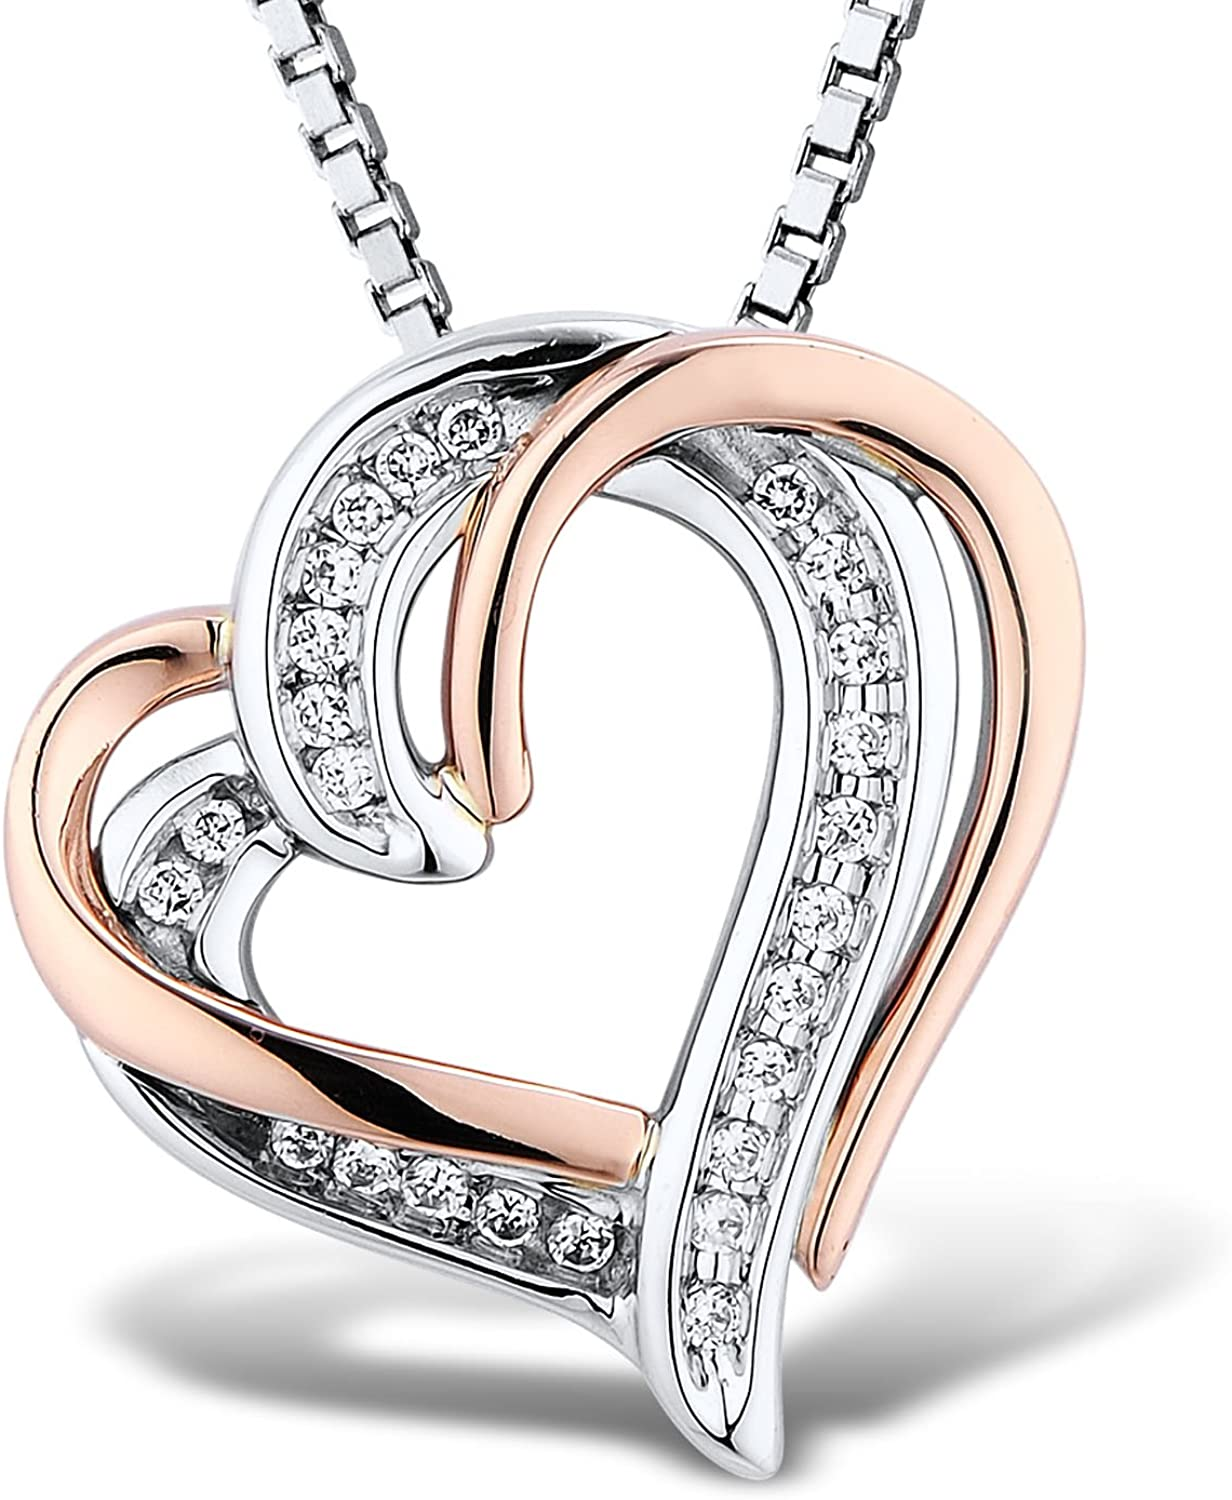 Diamond Max 72% OFF Heart Pendant Necklace 1 10 Silver cttw in and Sterling trust